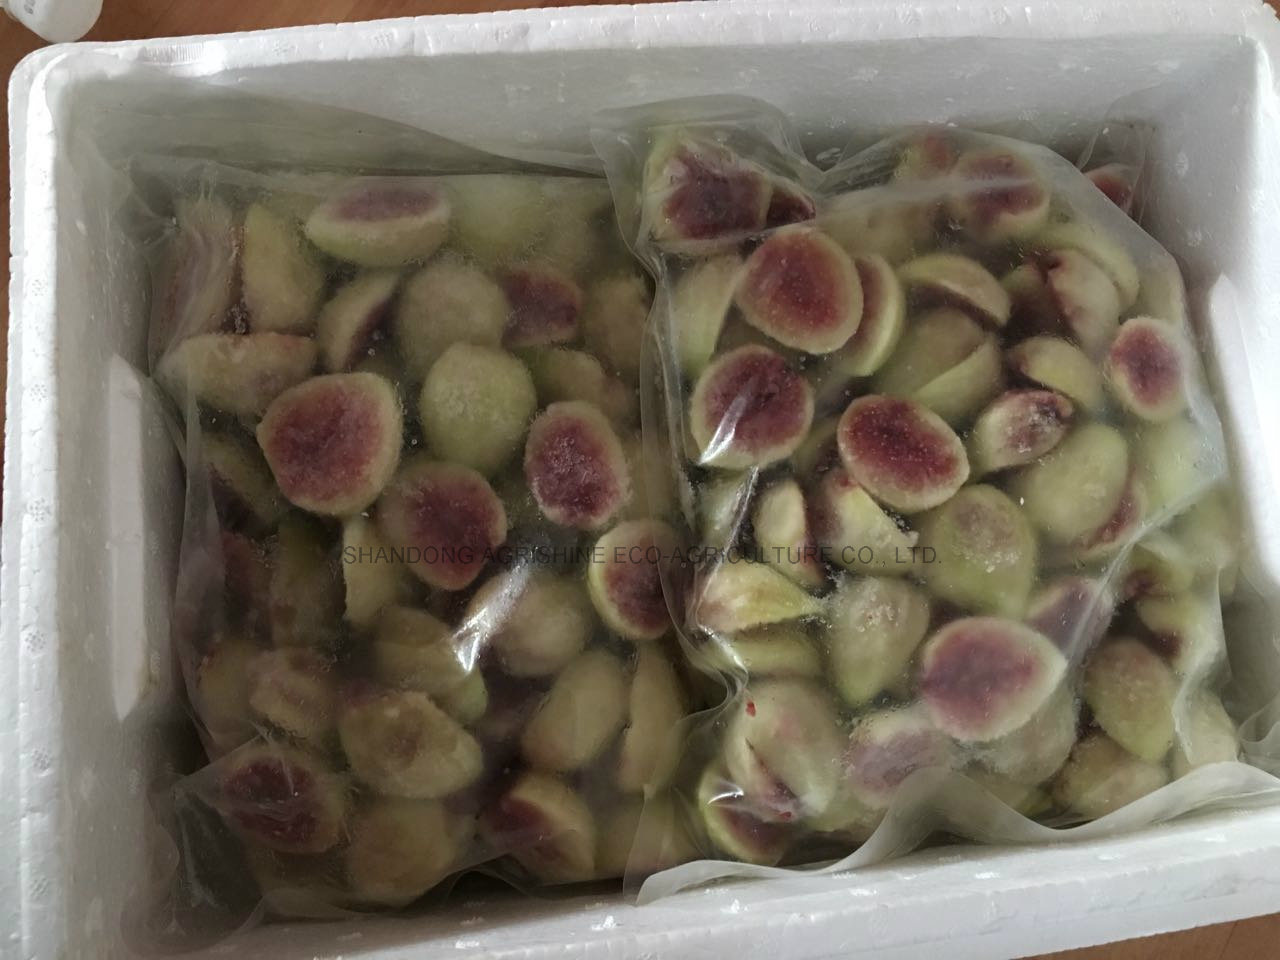 Frozen Fig or IQF Fig